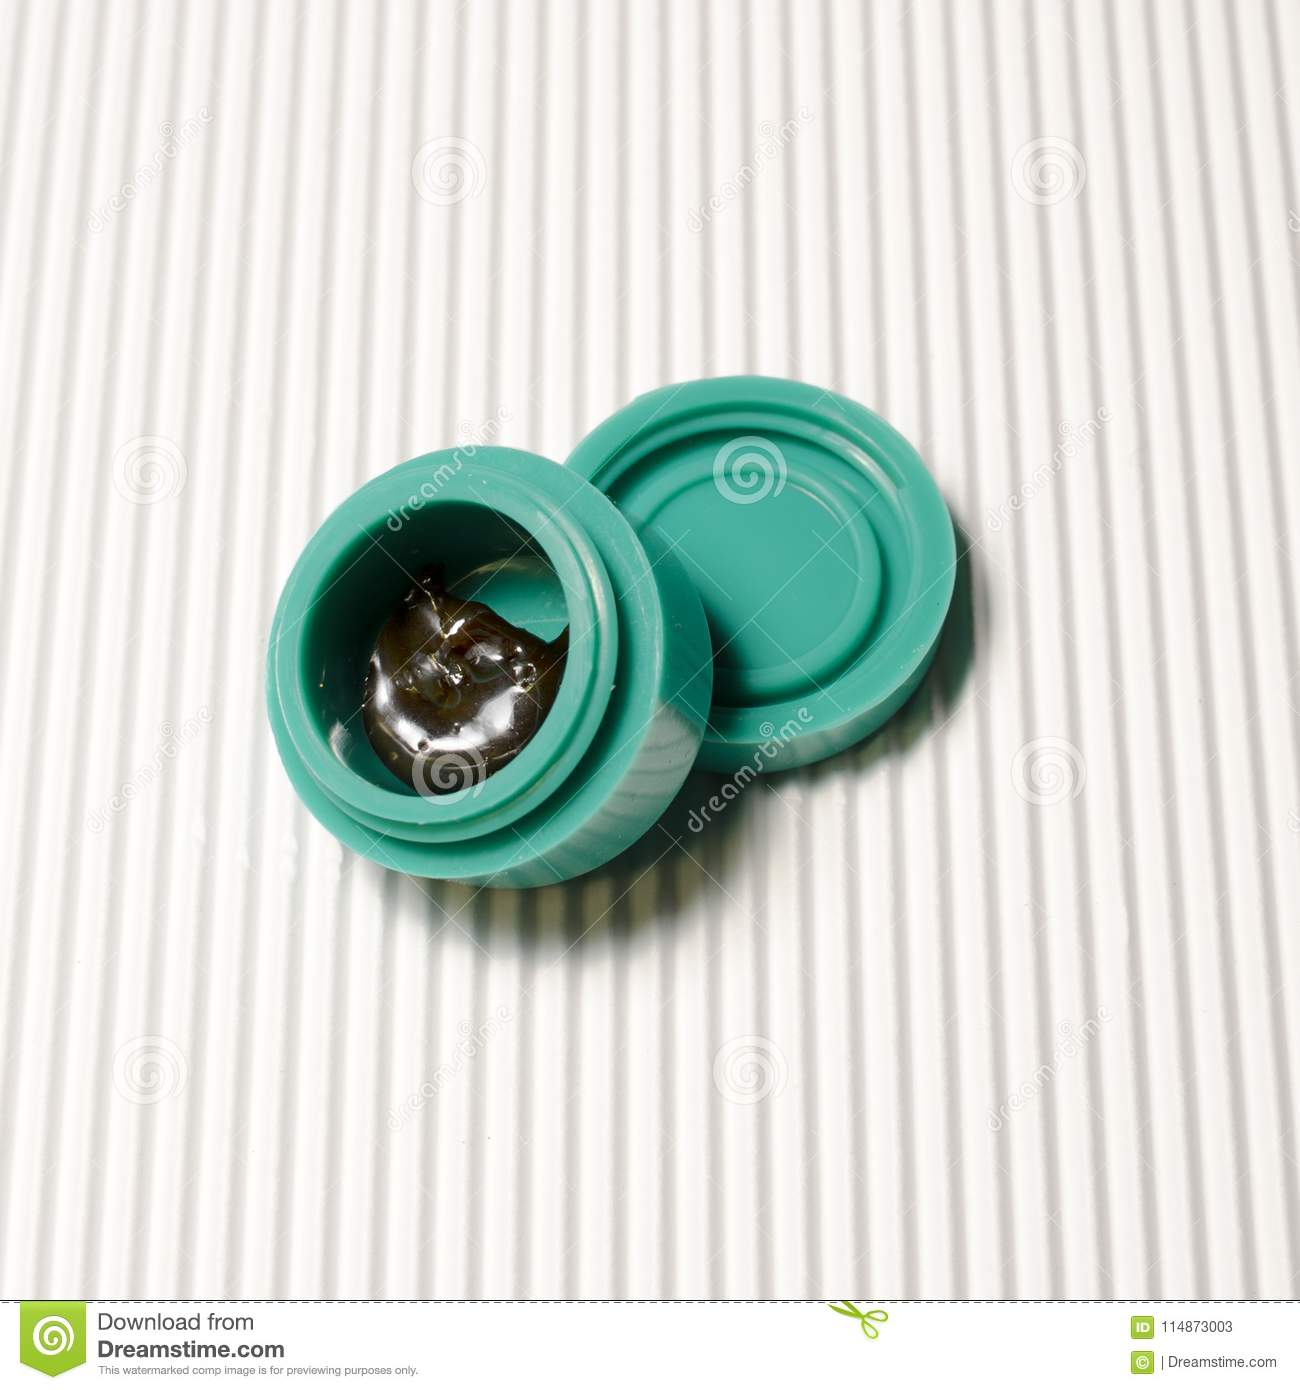 Dutch Treat Butane Hash Oil - Pull And Snap Stock Image